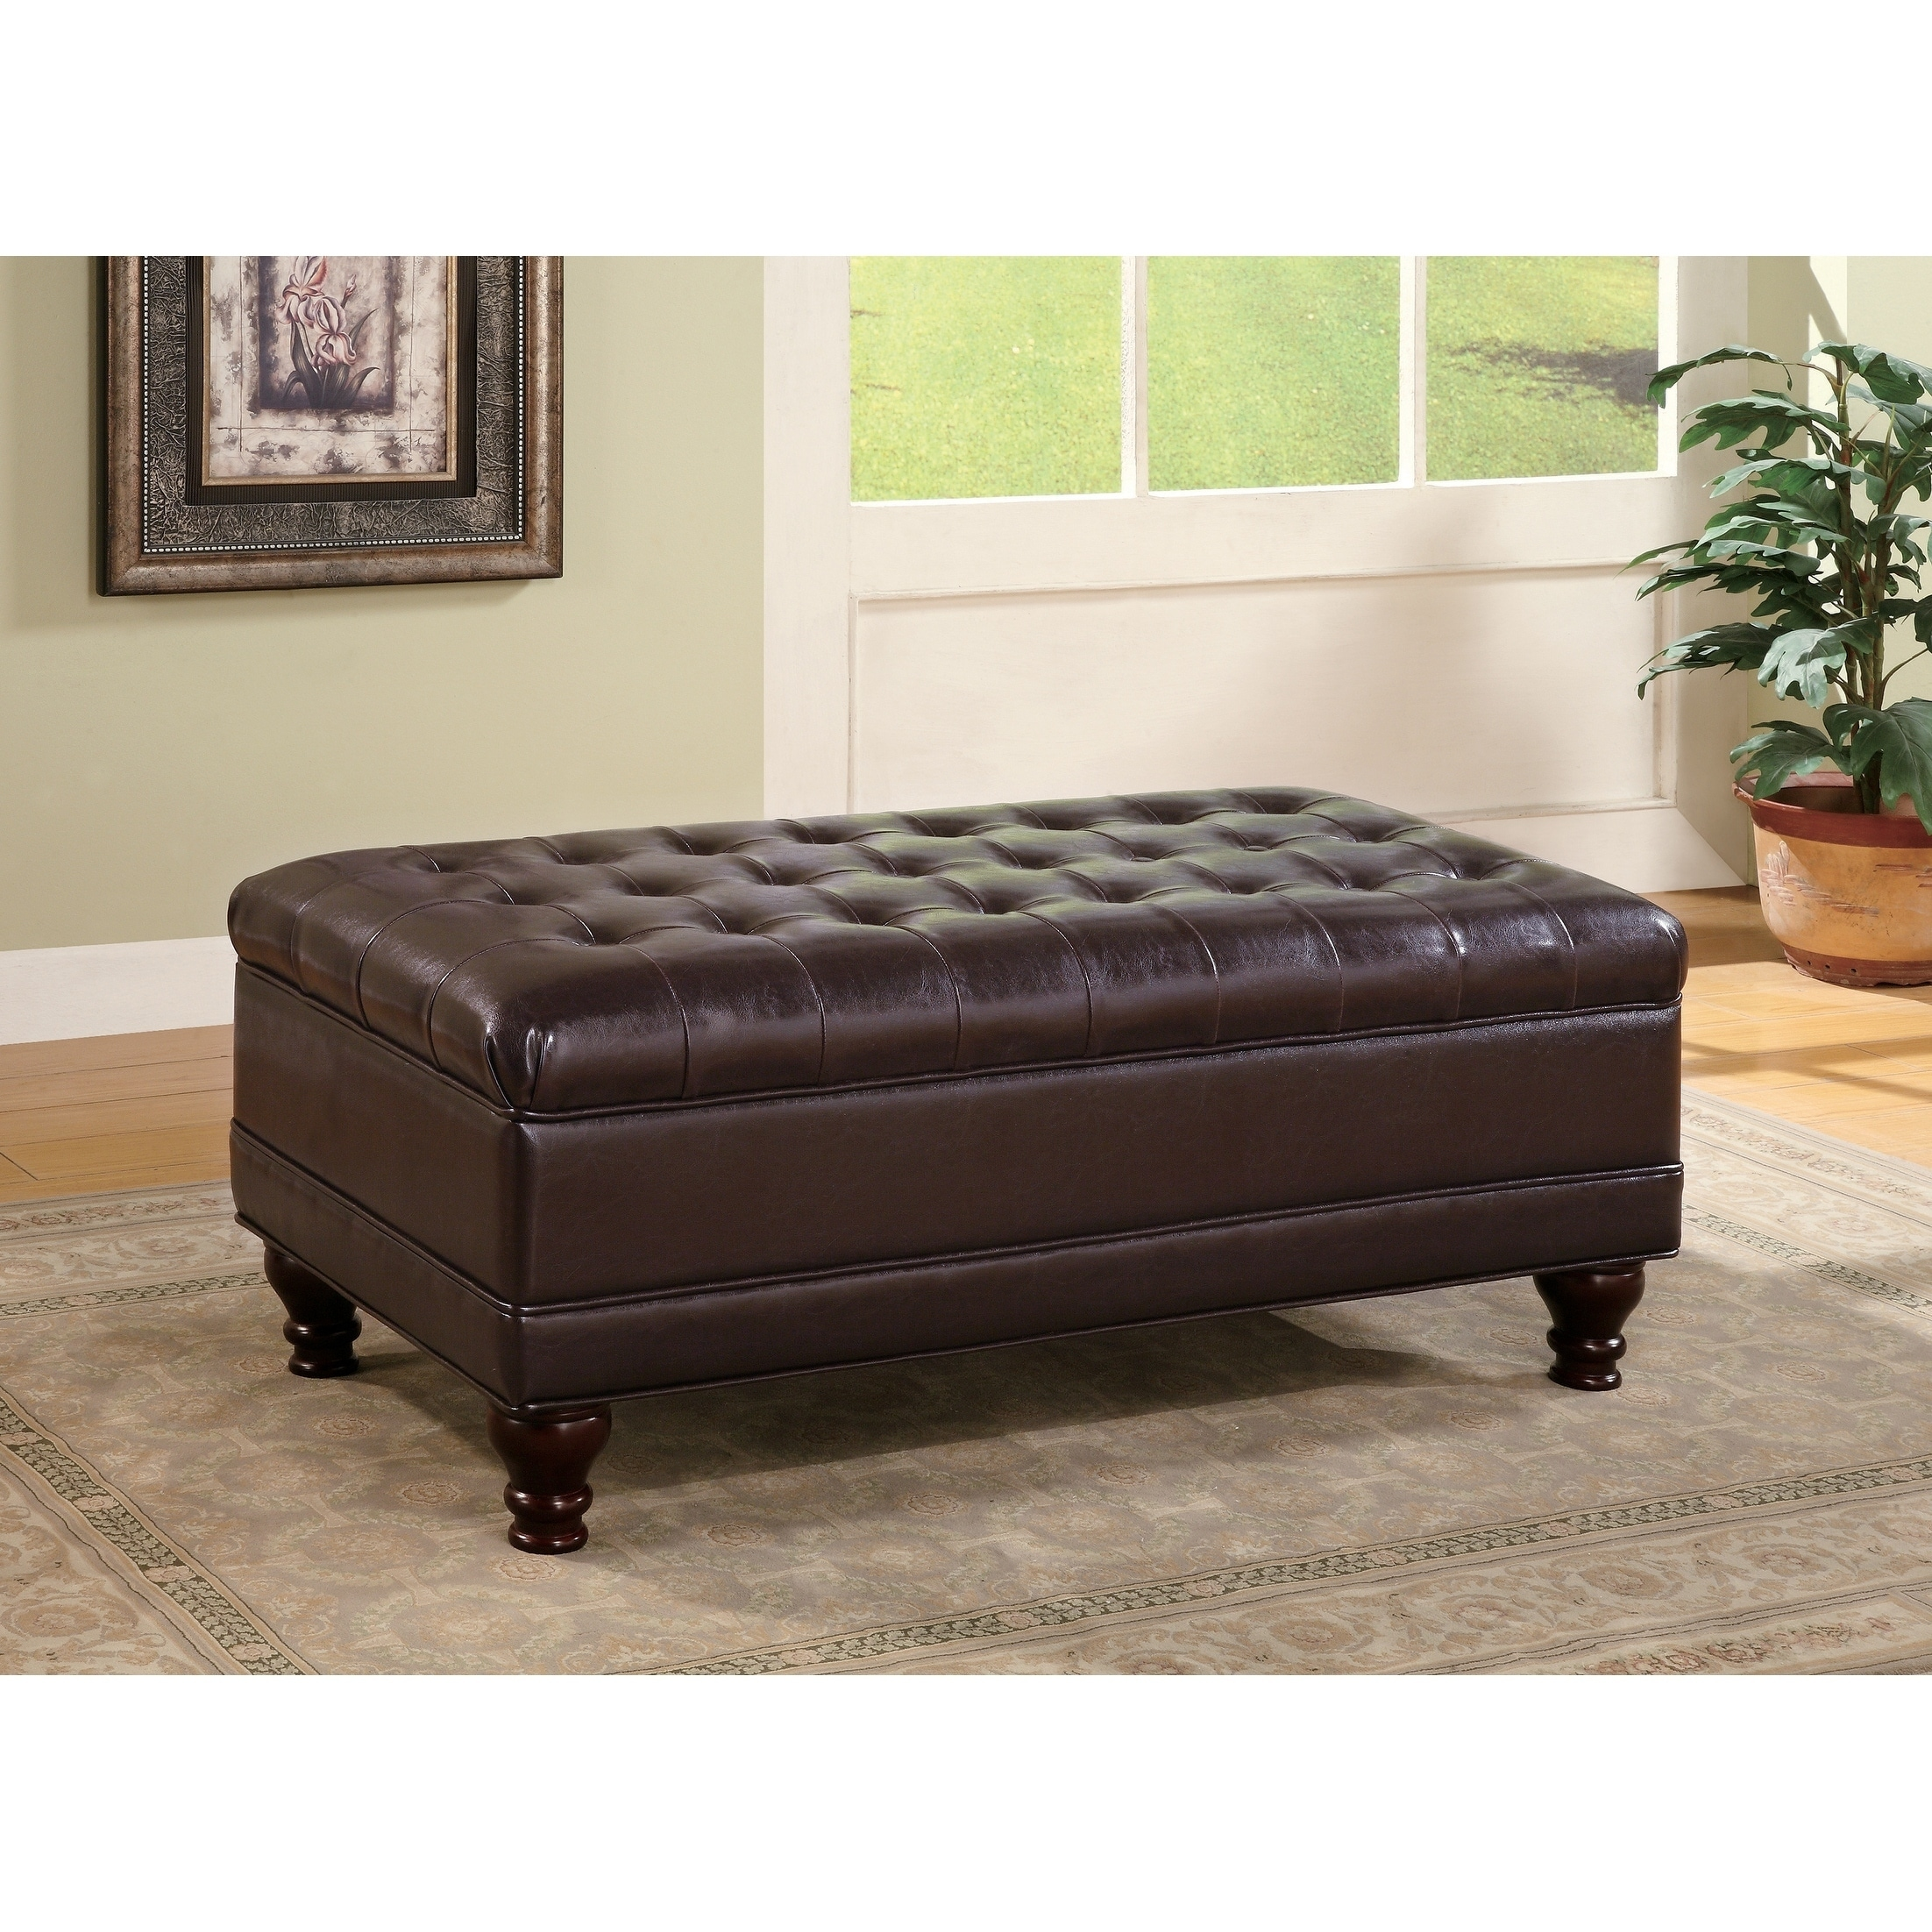 Coaster Company Brown Faux Leather Oversized Storage Ottoman (Ottoman)